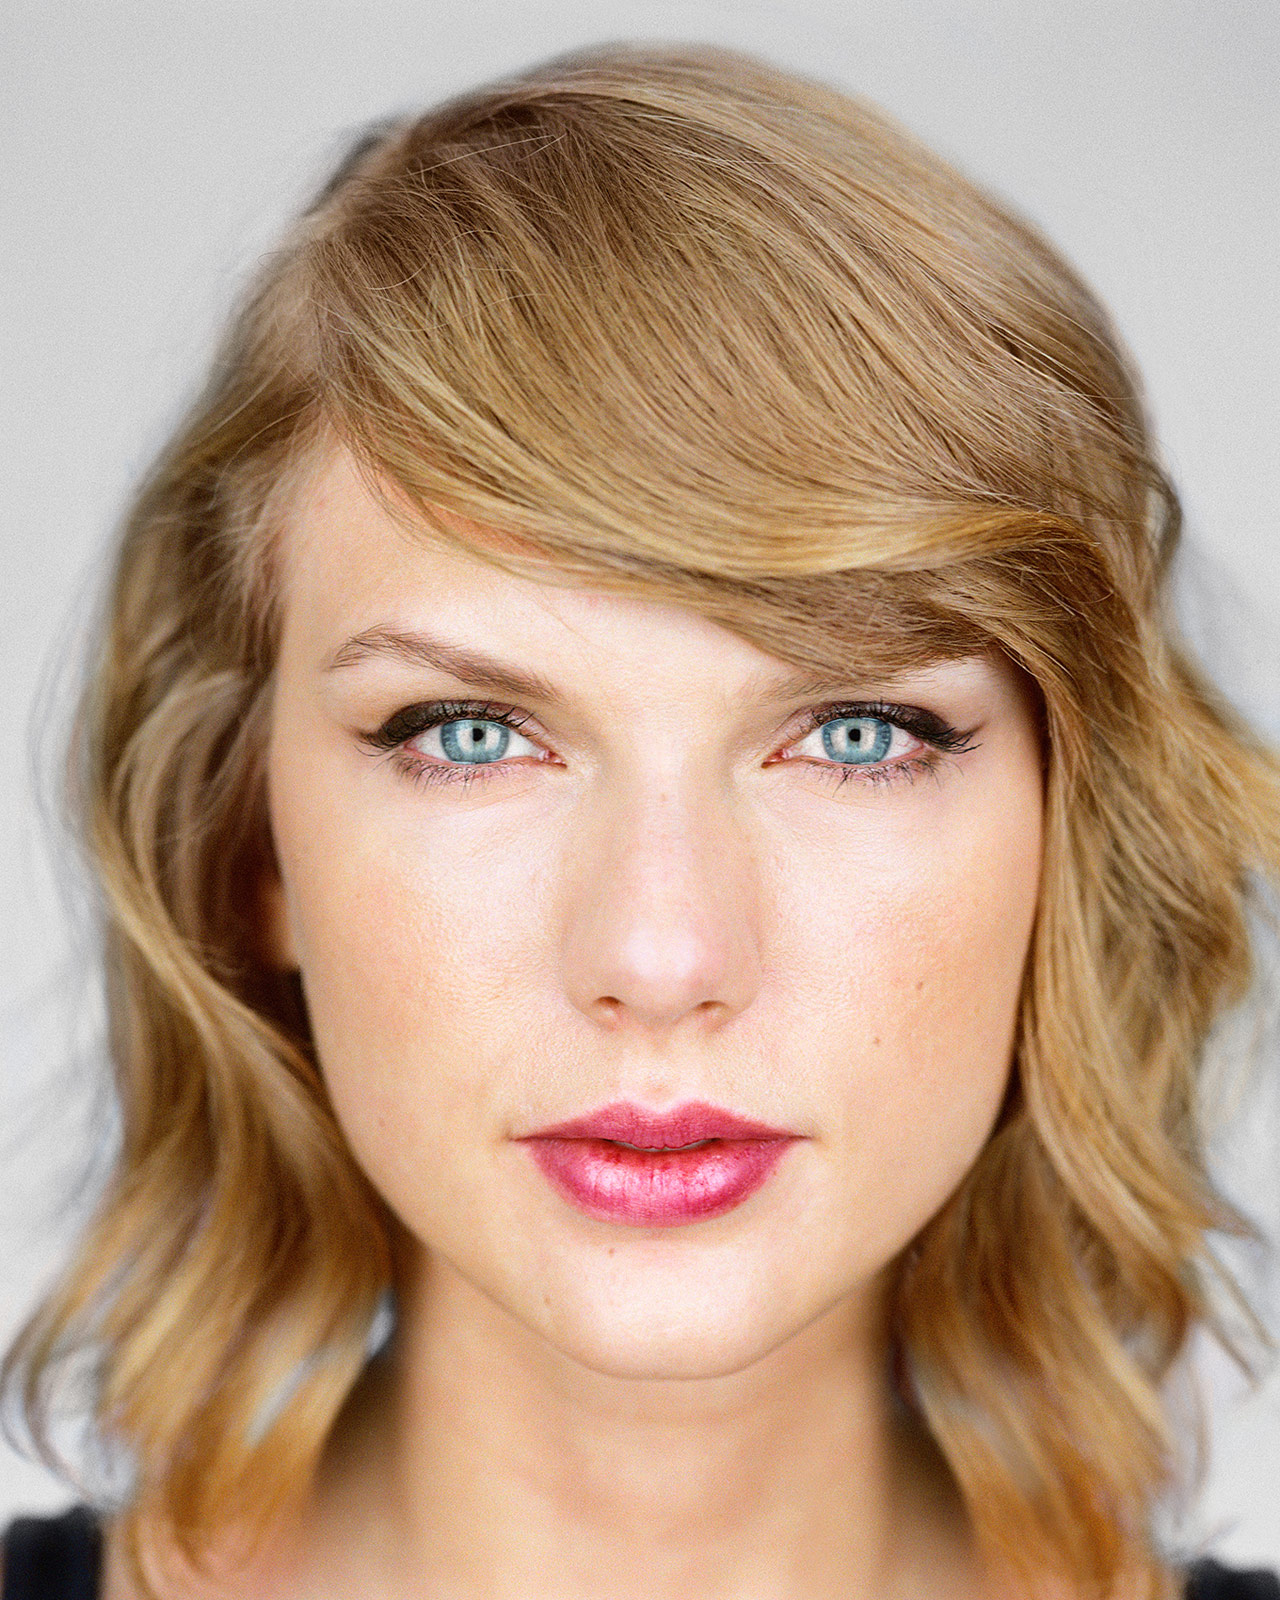 02A_Swift_Taylor_TIME_092914_4_FR12_F_WEB